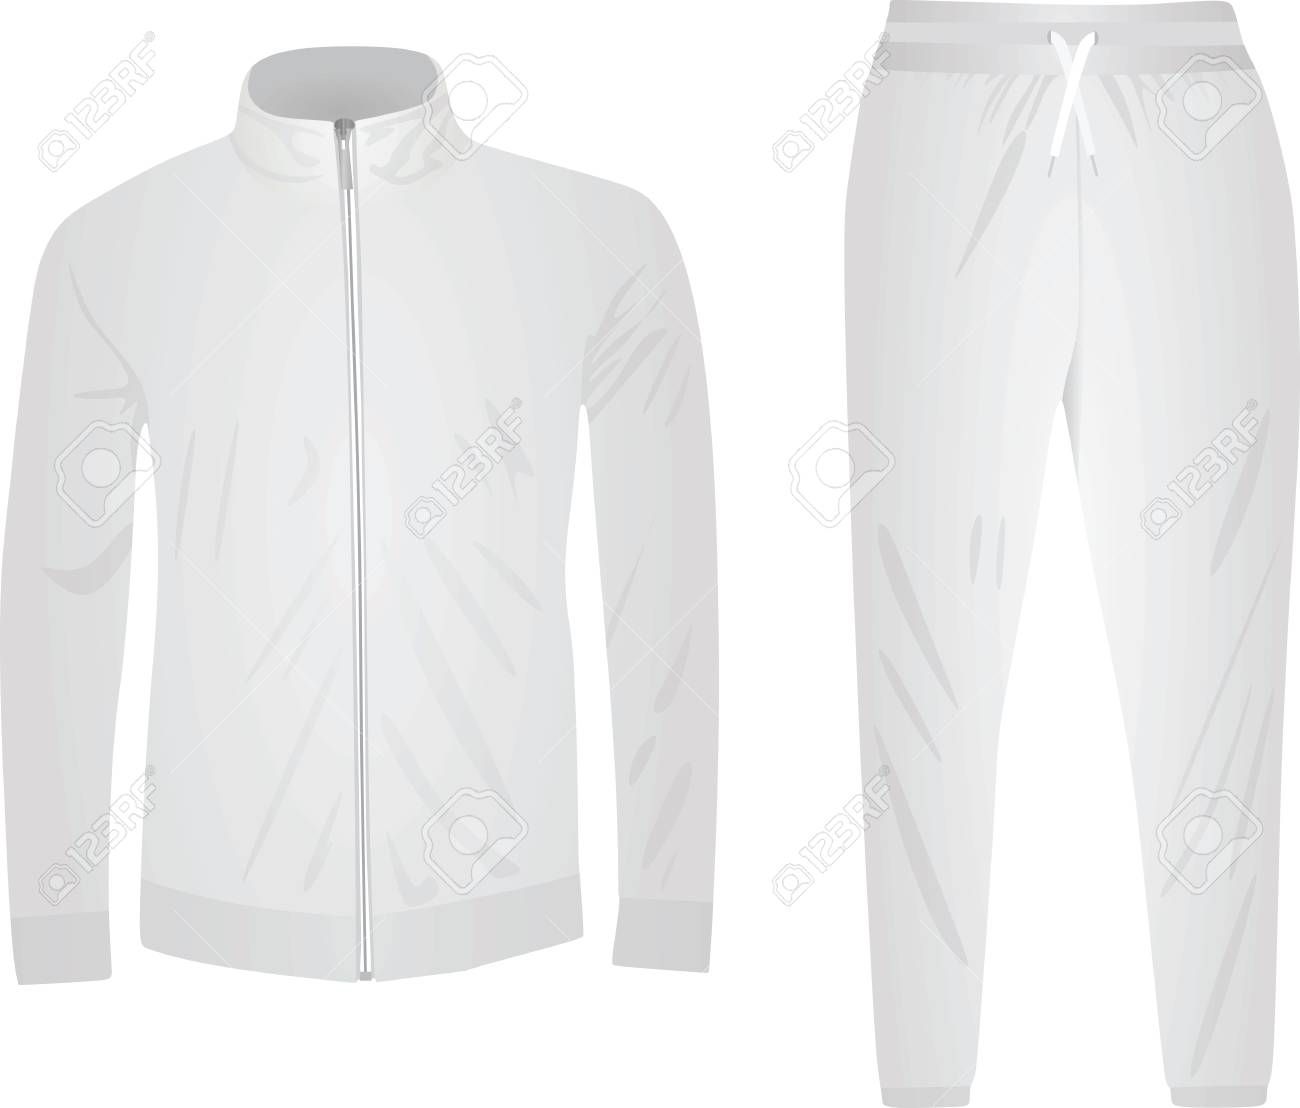 cedc35810679 White tracksuit. vector illustration Stock Vector - 95158907